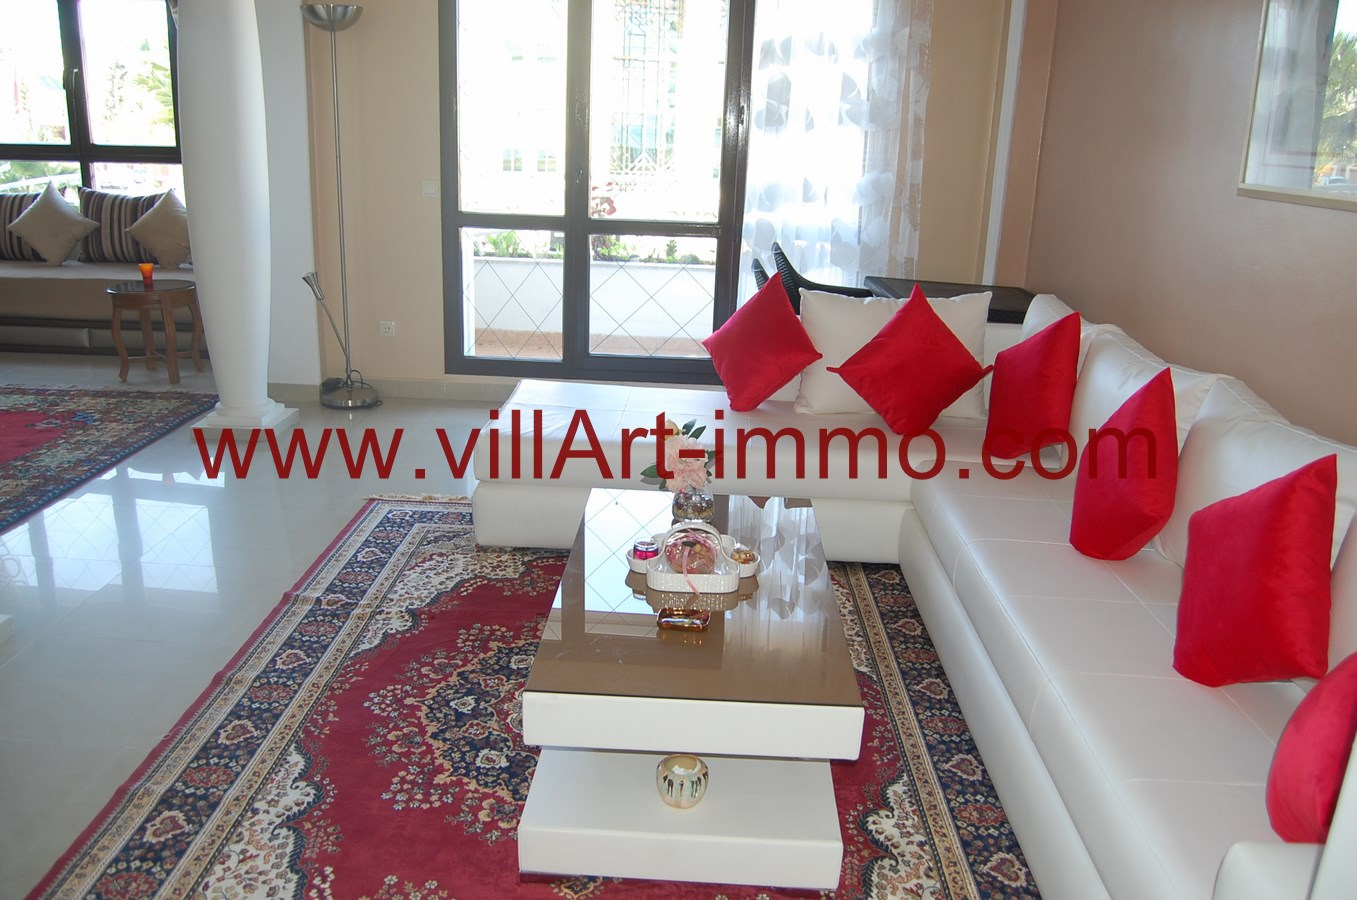 1-location-appartement-meuble-iberia-tanger-salon-1-l895-villart-immo